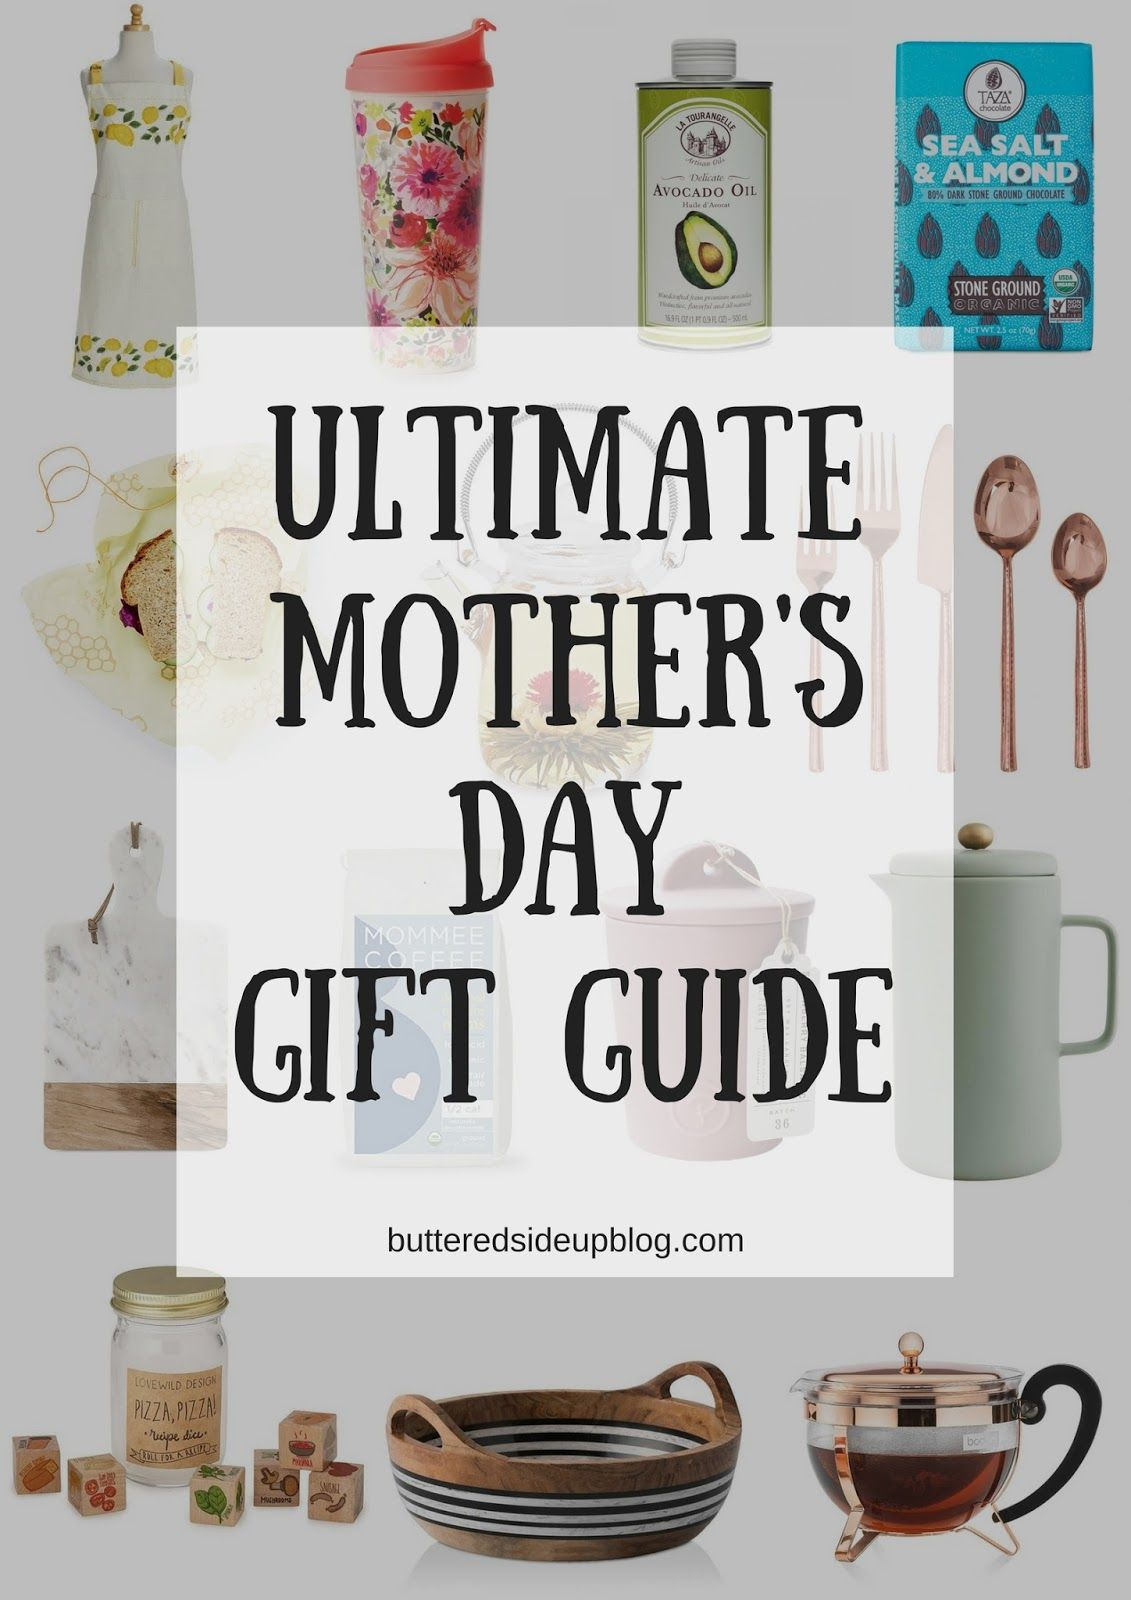 Ultimate Mother's Day Gift Guide - gift ideas for Mother's Day